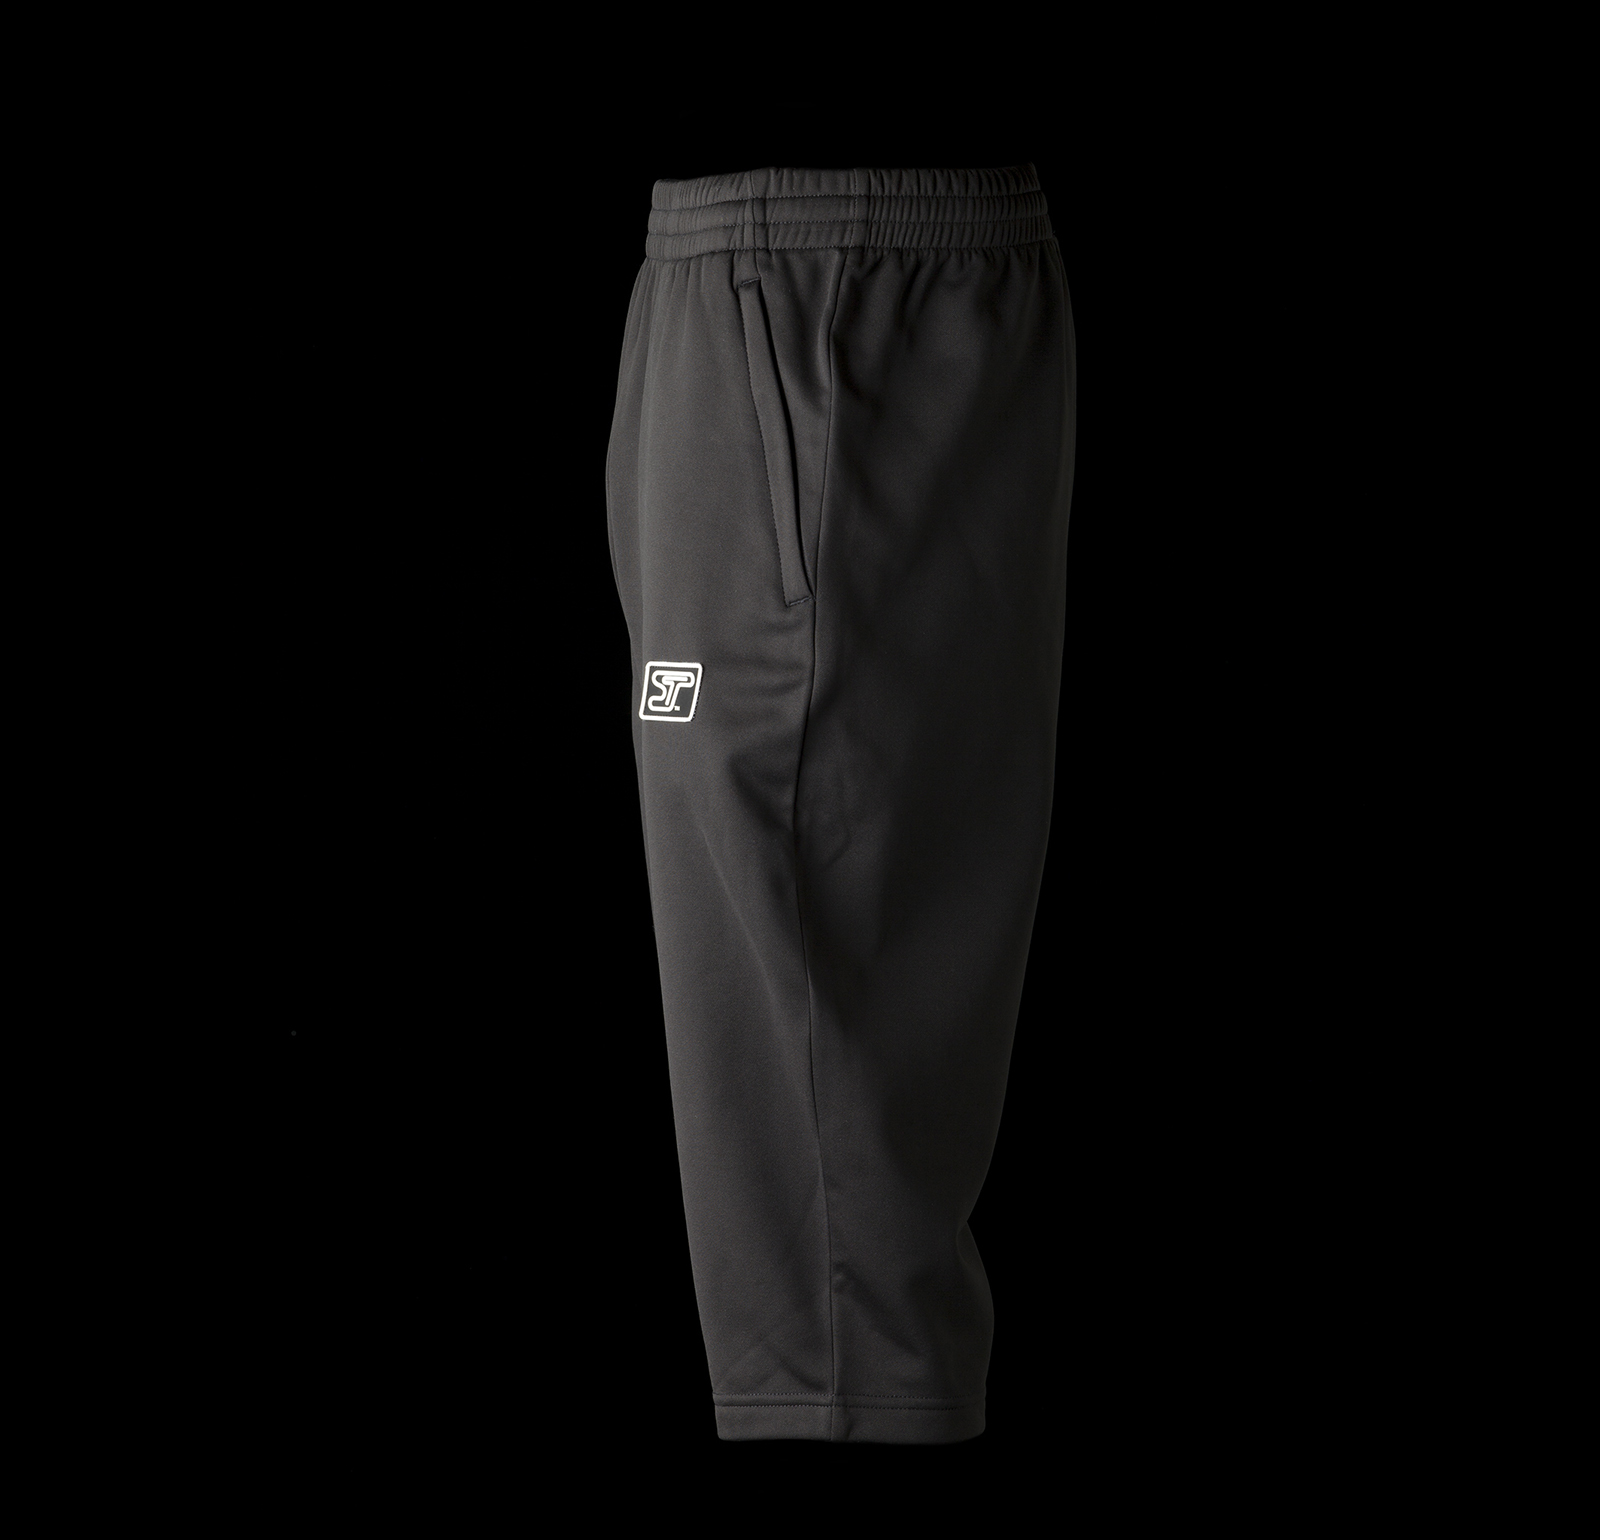 excel-3-4-pant-promo-19